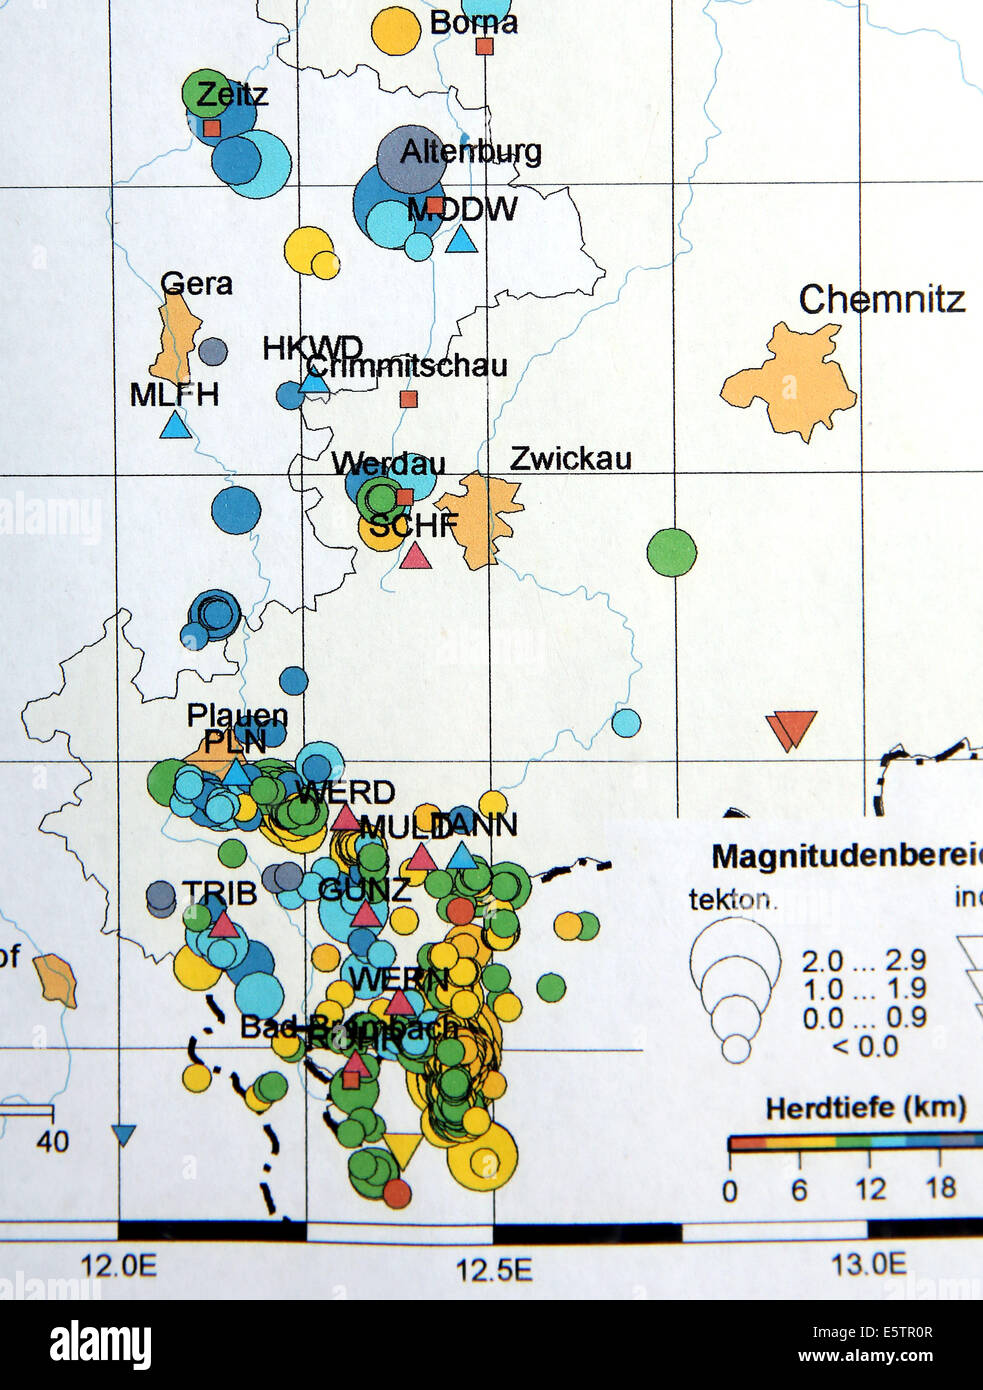 A map produced by the GeoPhysical Observatory of Leipzig University